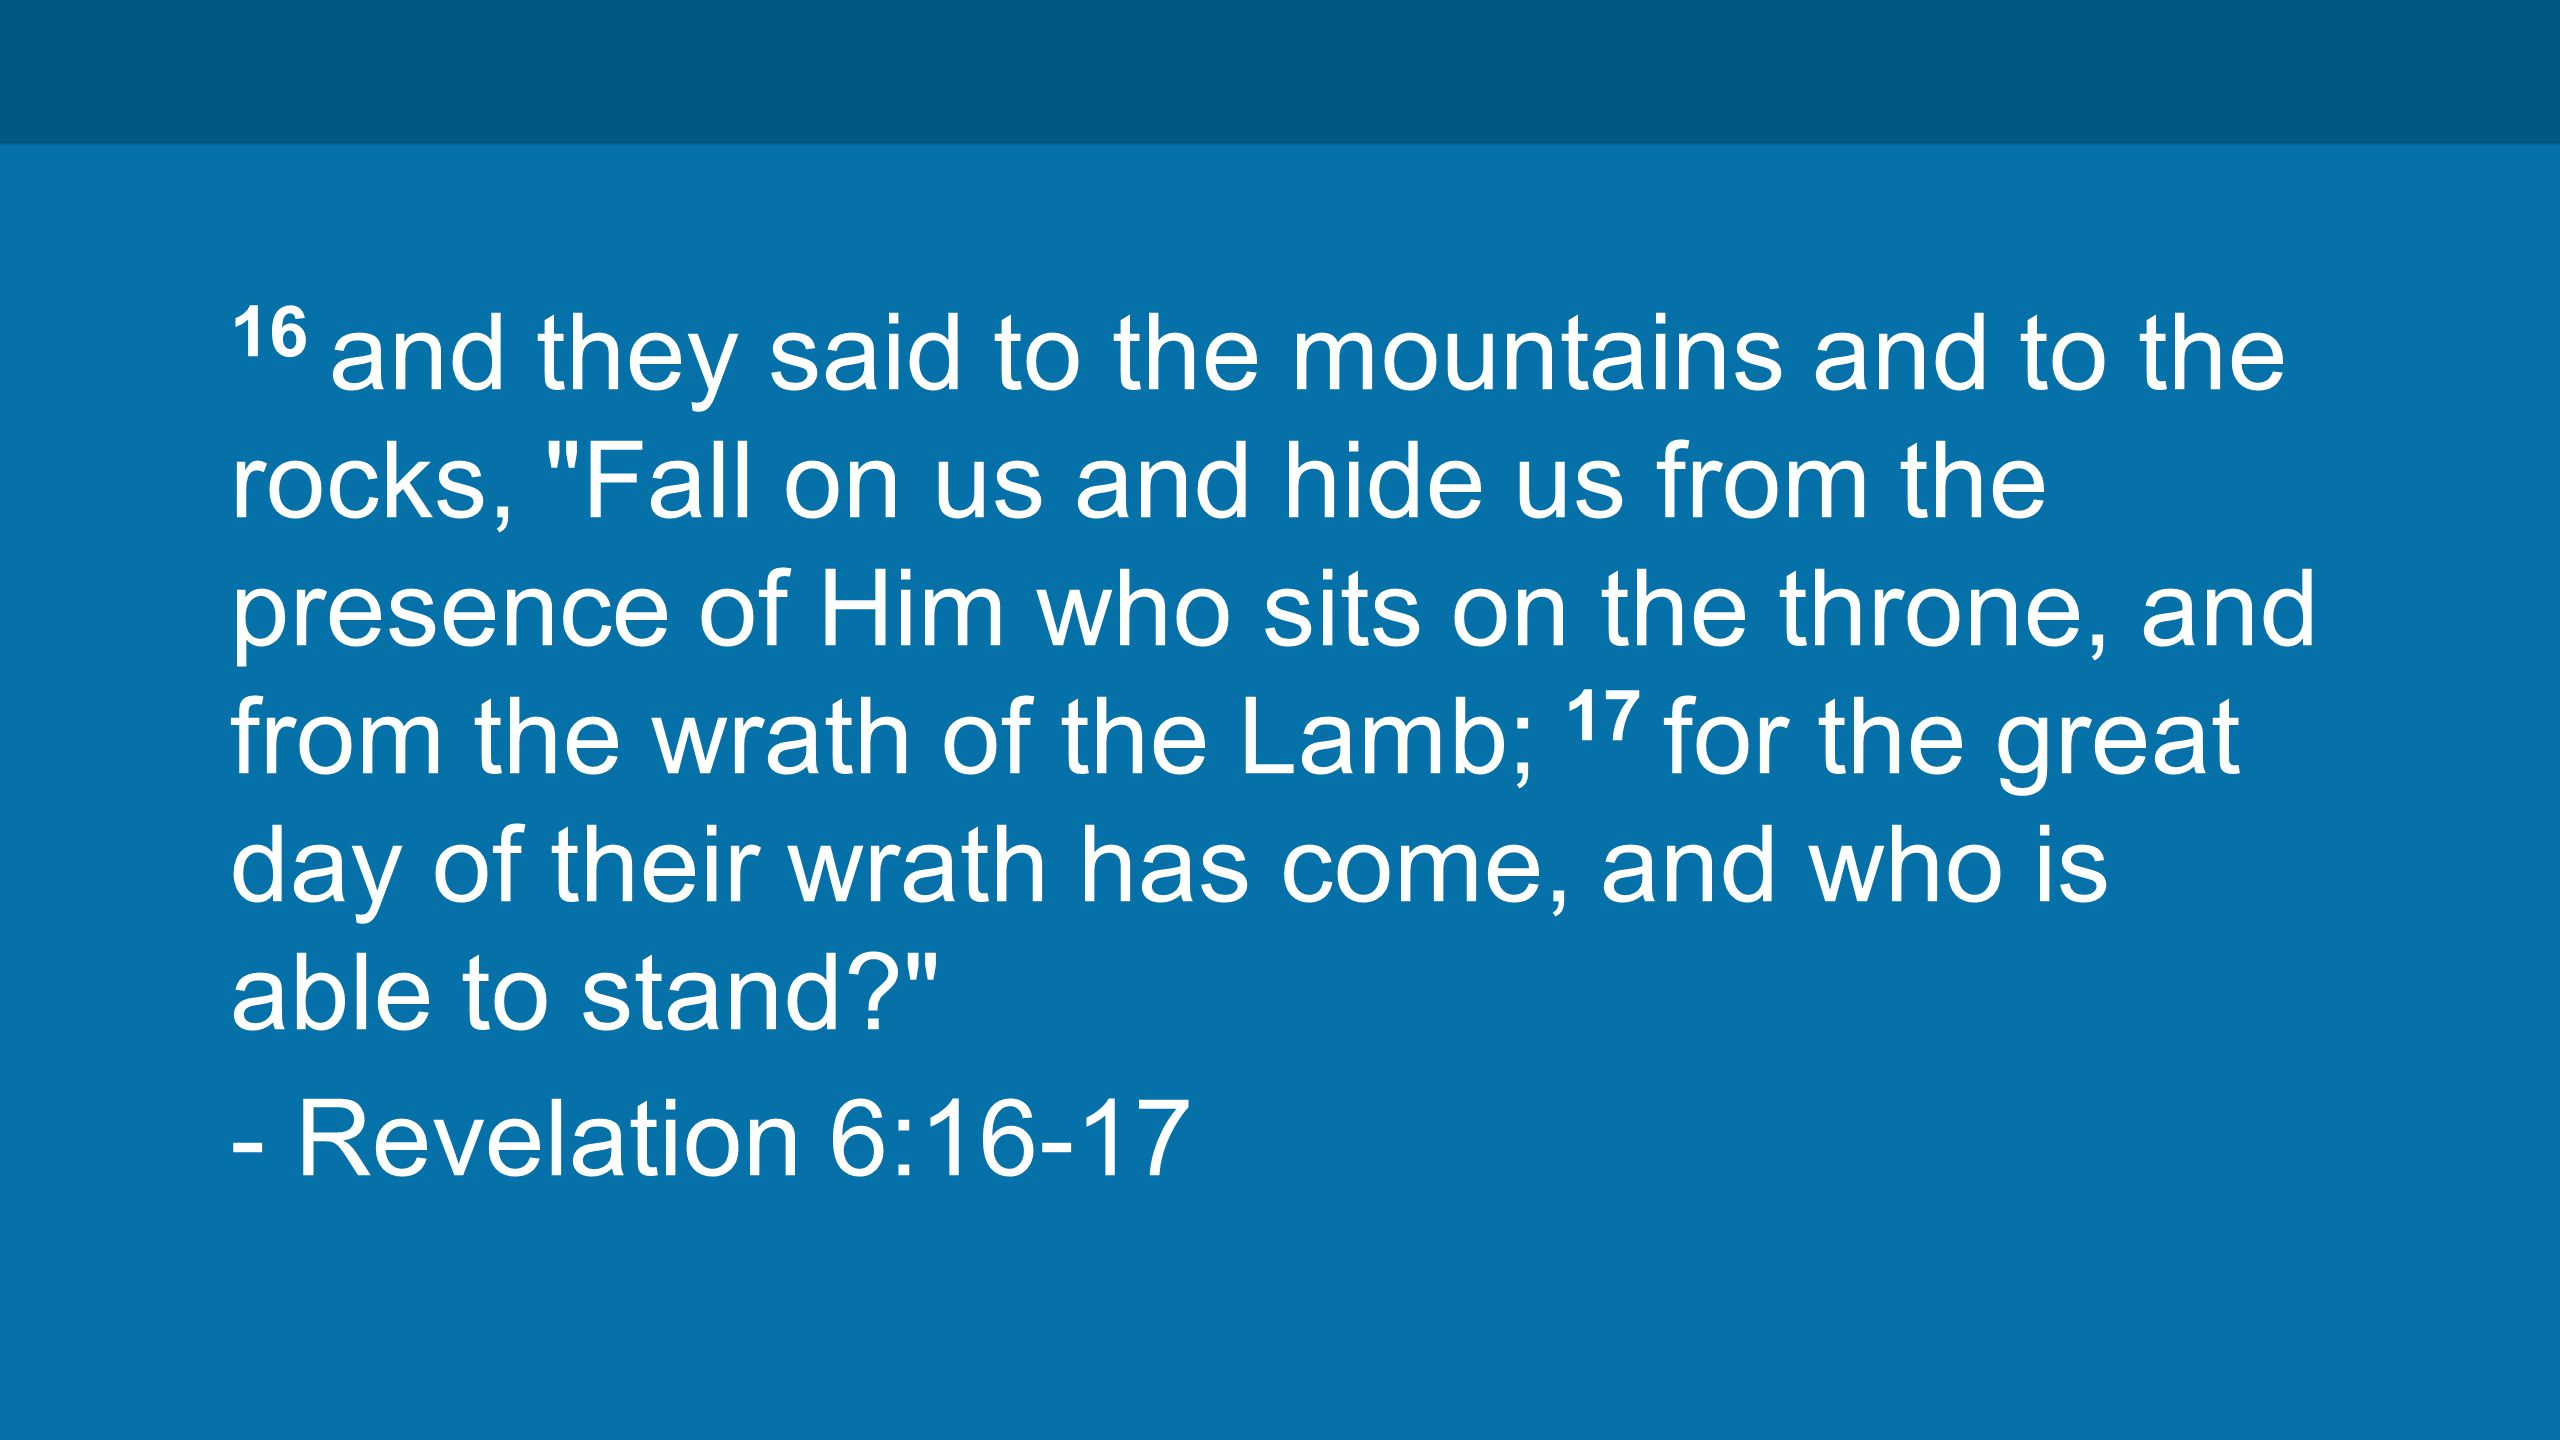 16 and they said to the mountains and to the rocks, Fall on us and hide us from the presence of Him who sits on the throne, and from the wrath of the Lamb; 17 for the great day of their wrath has come, and who is able to stand? - Revelation 6:16-17